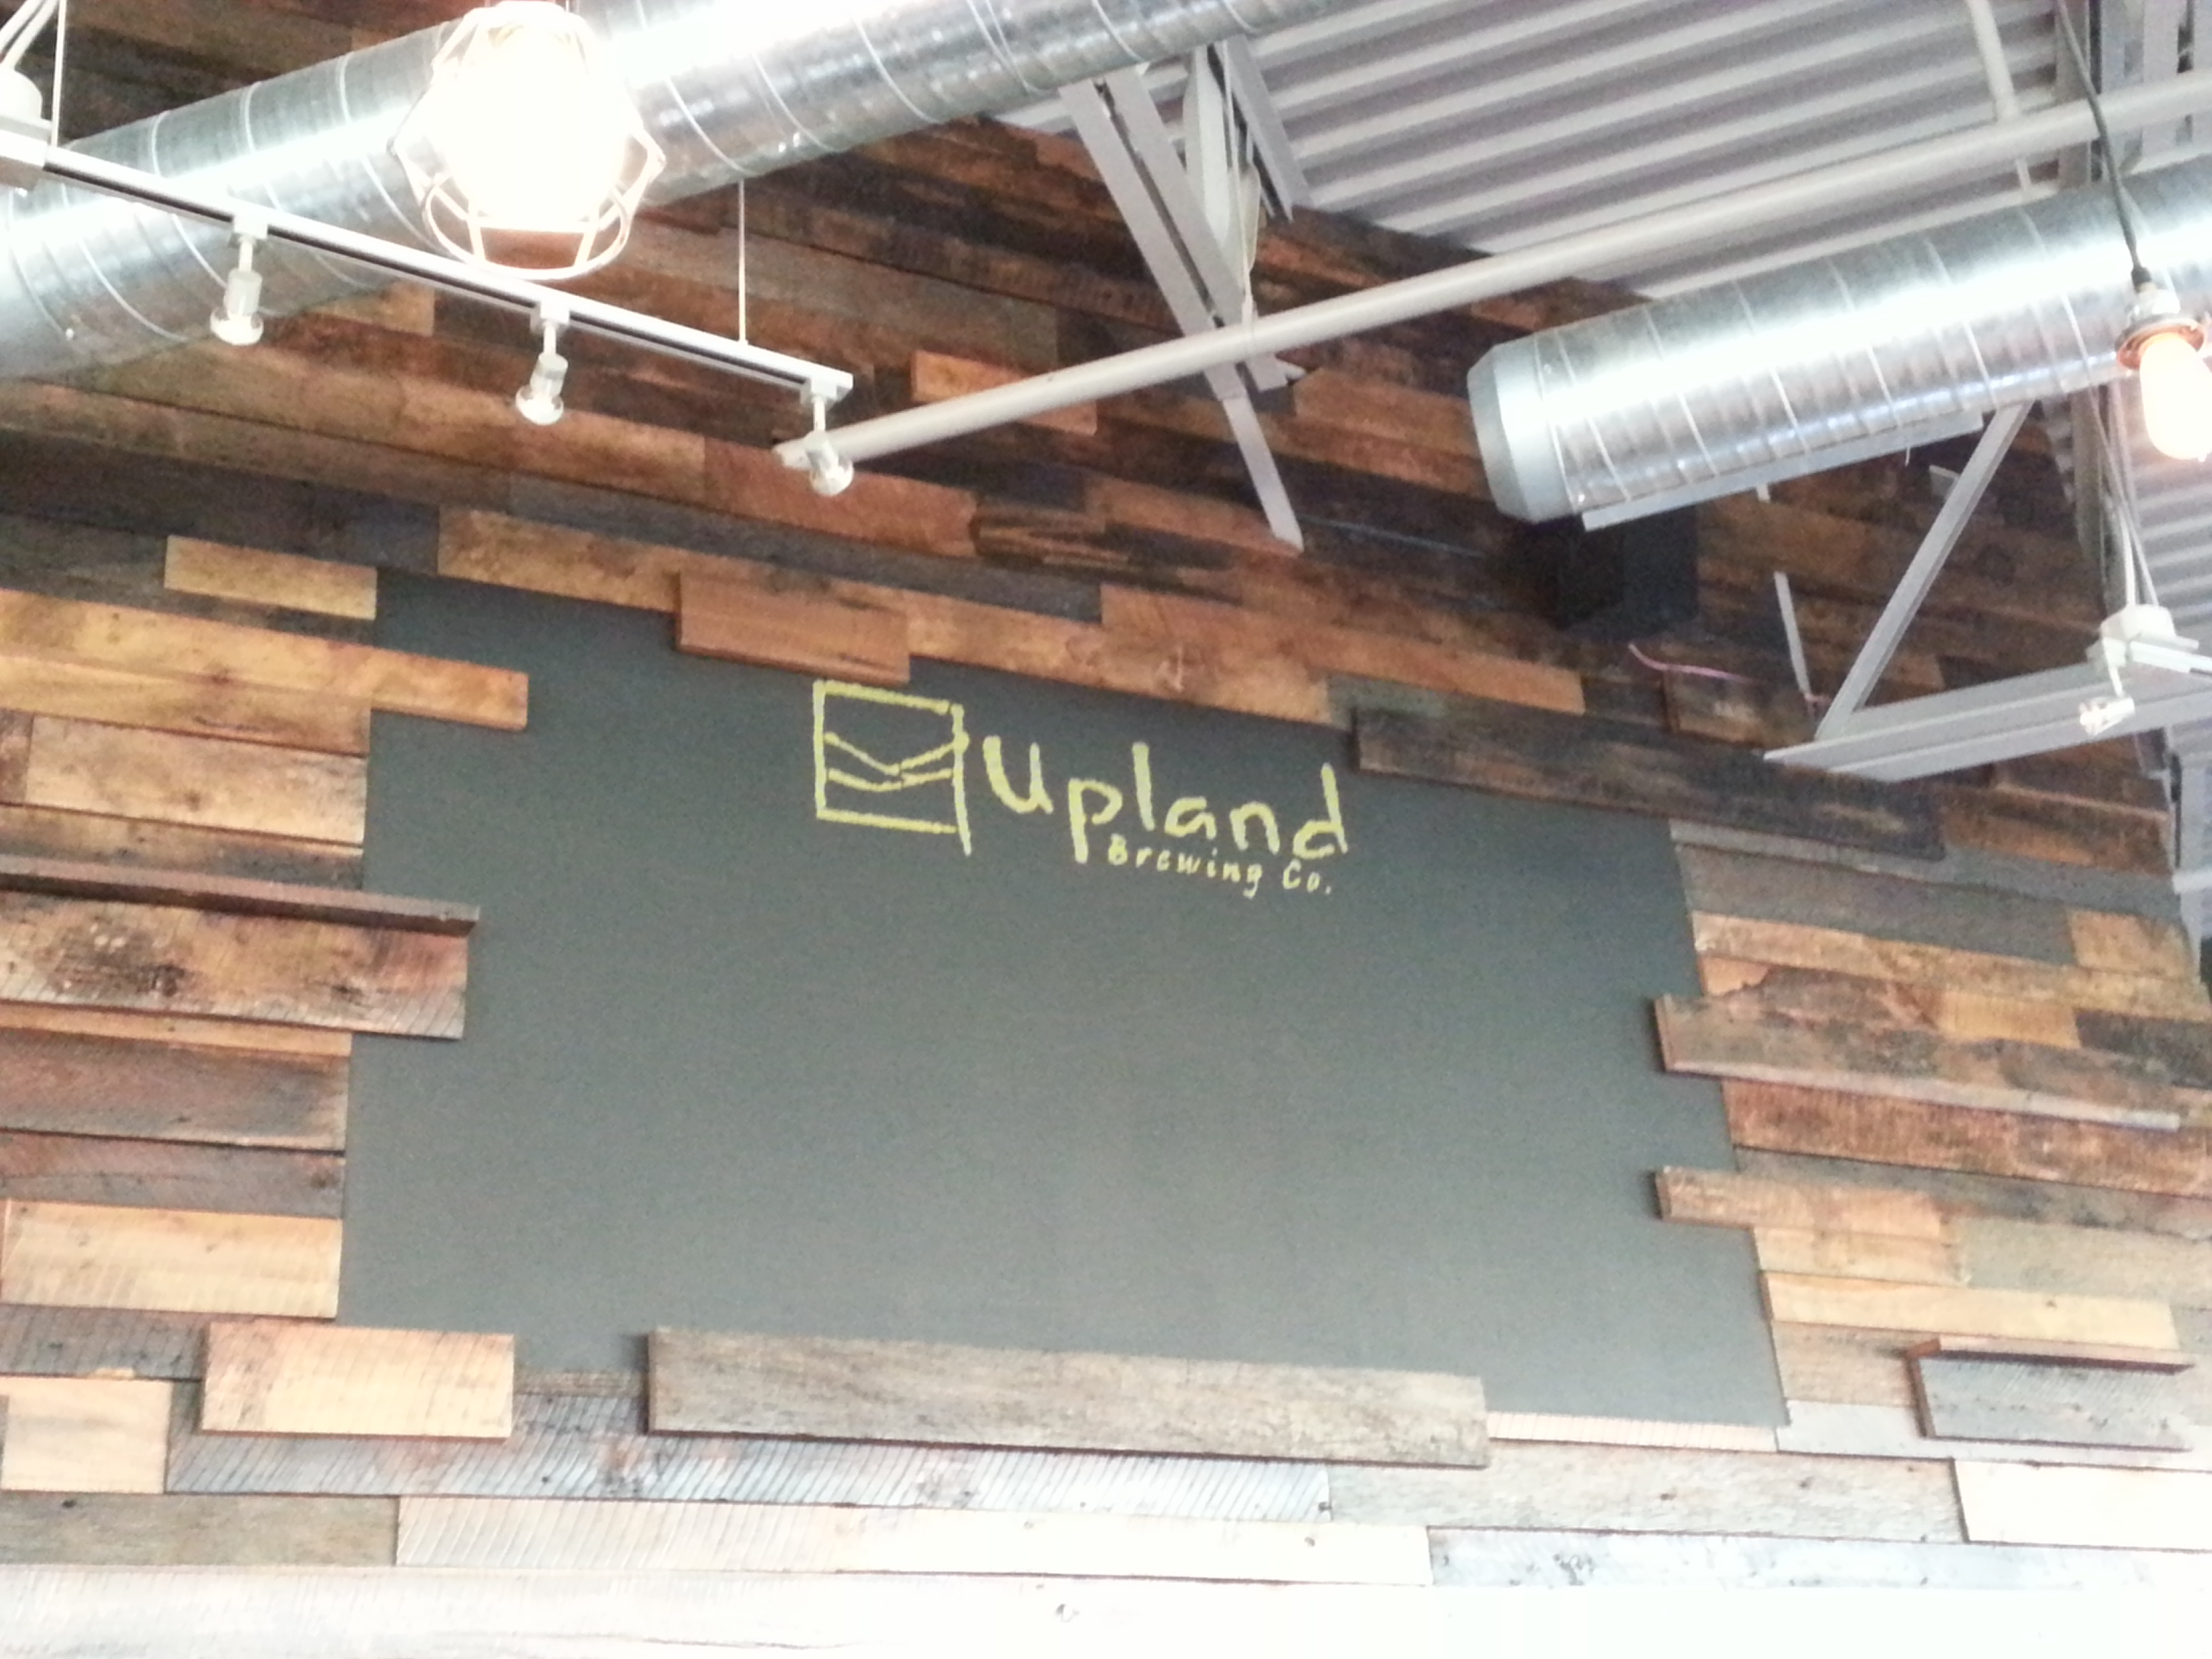 upland carmel tap house opens april 27th | craftbeer